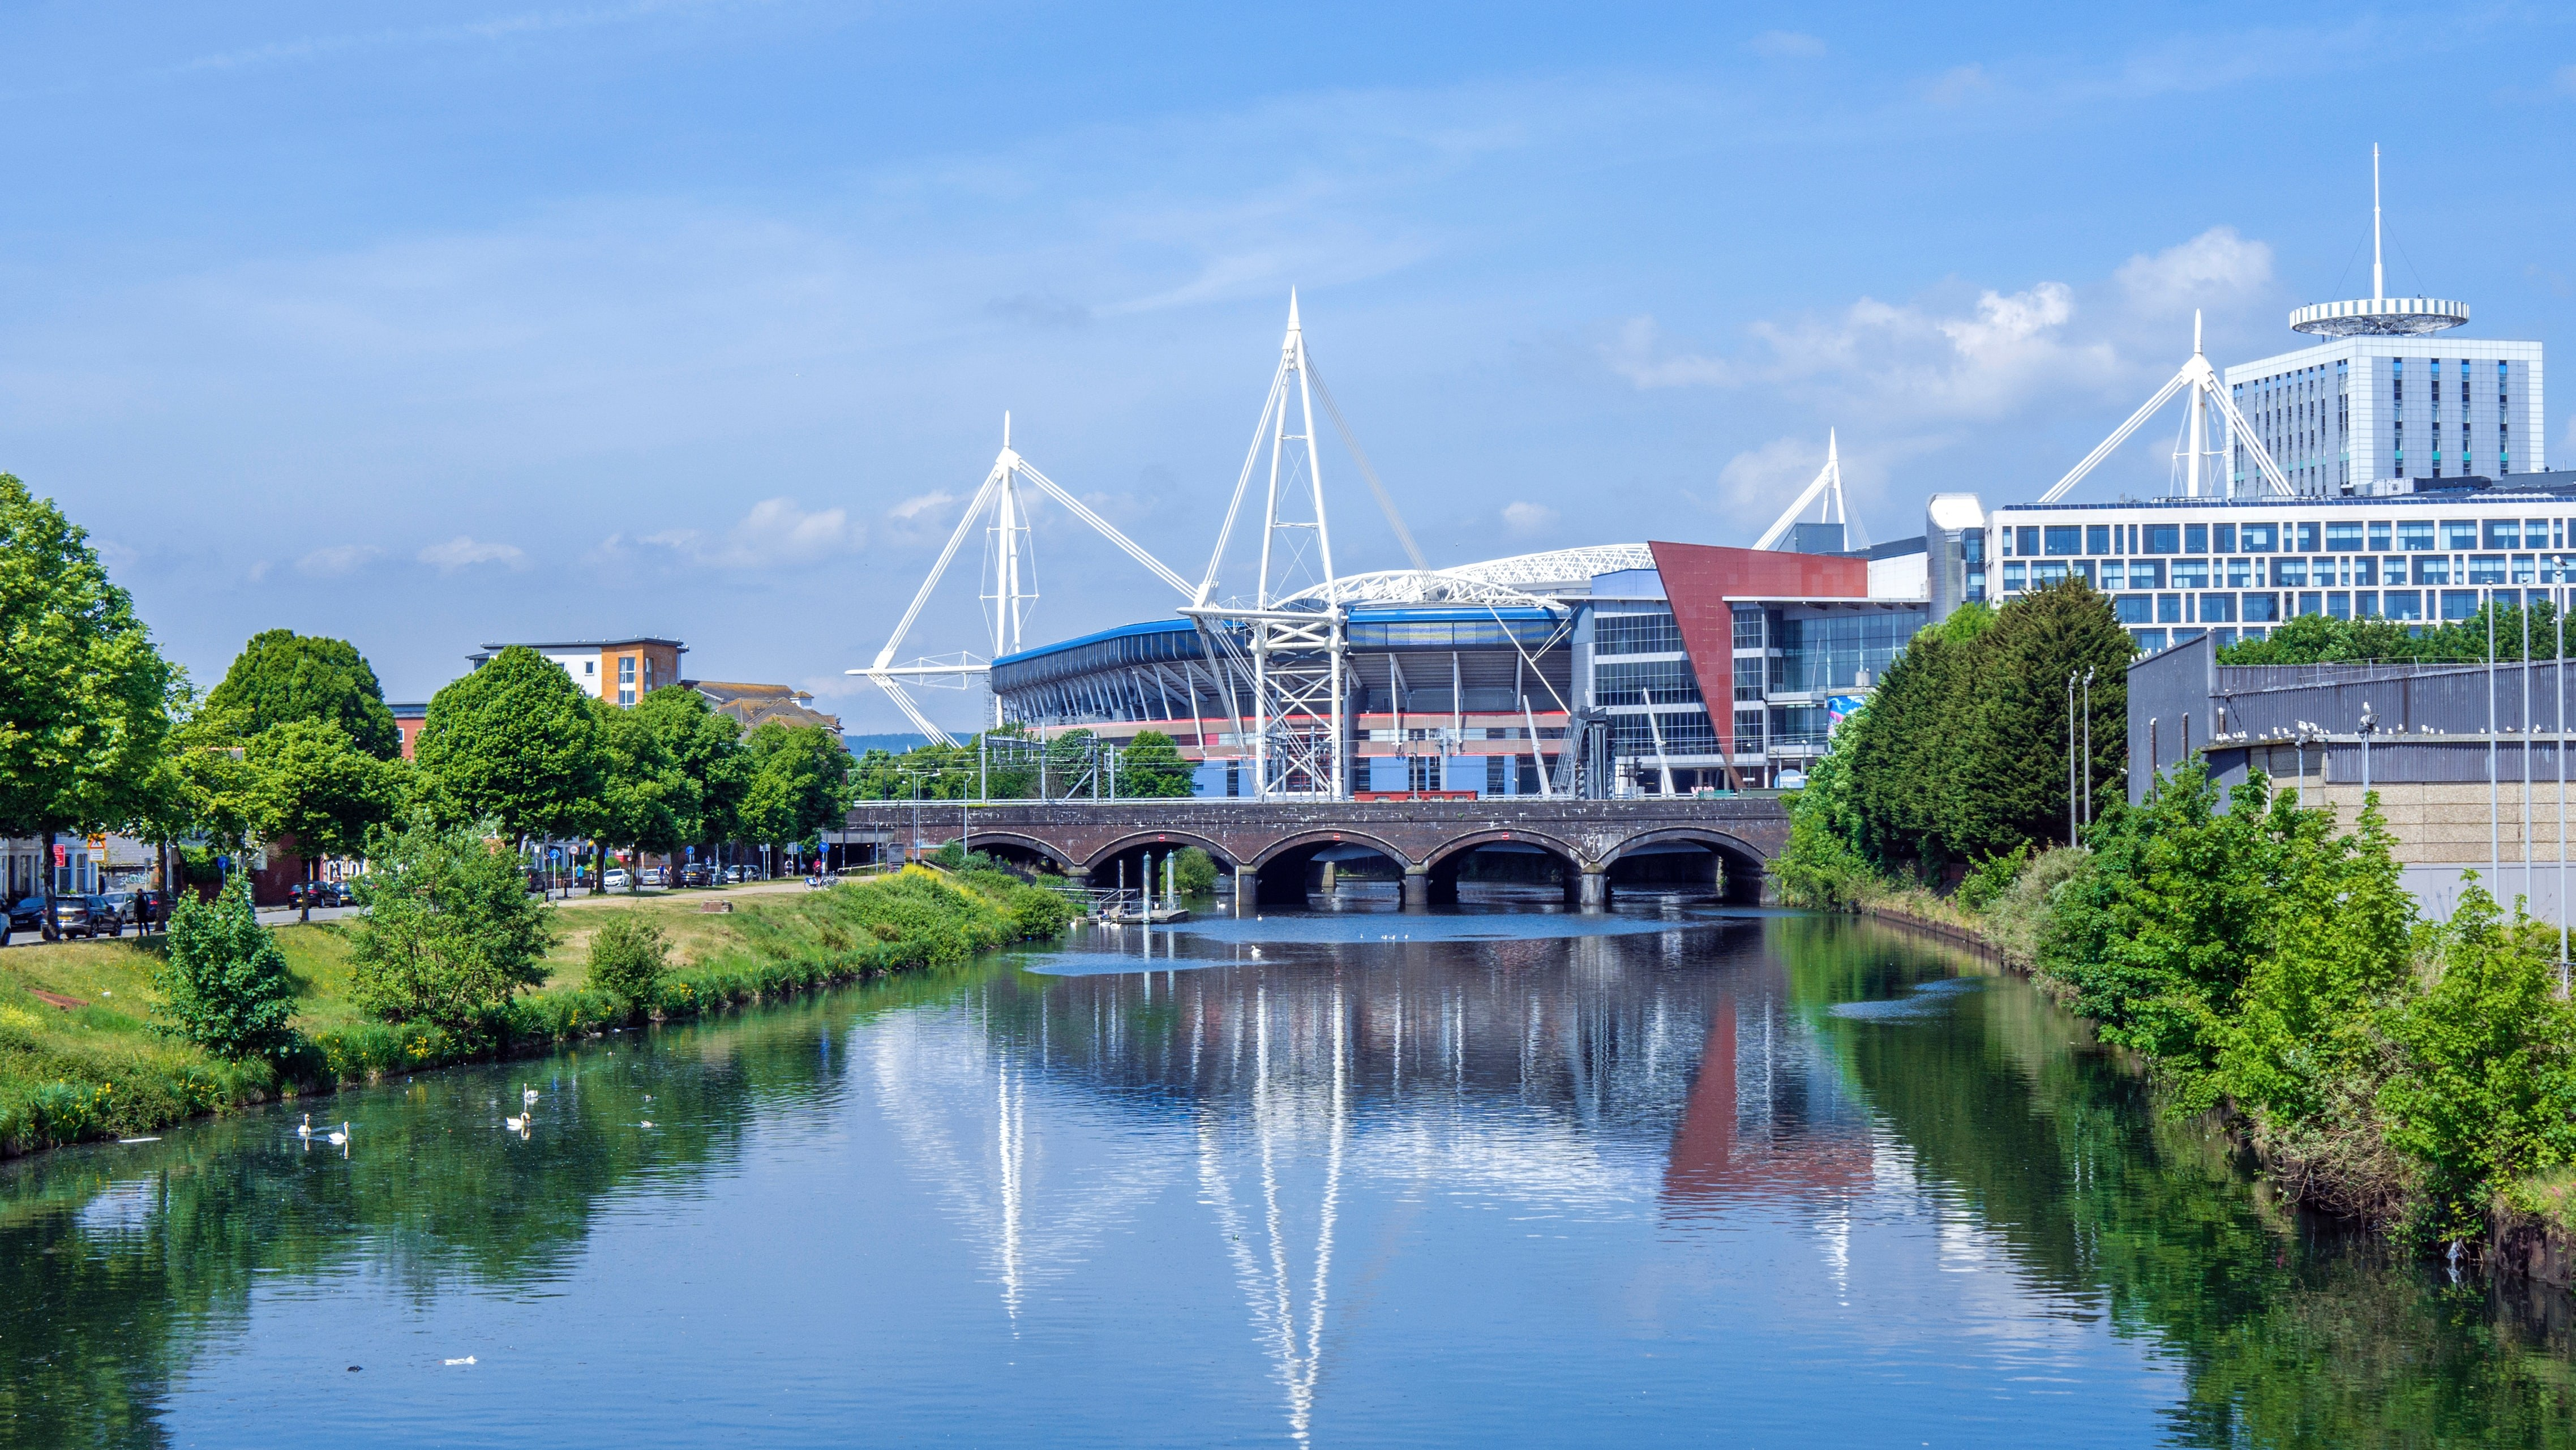 The Principality Stadium in Cardiff, Wales